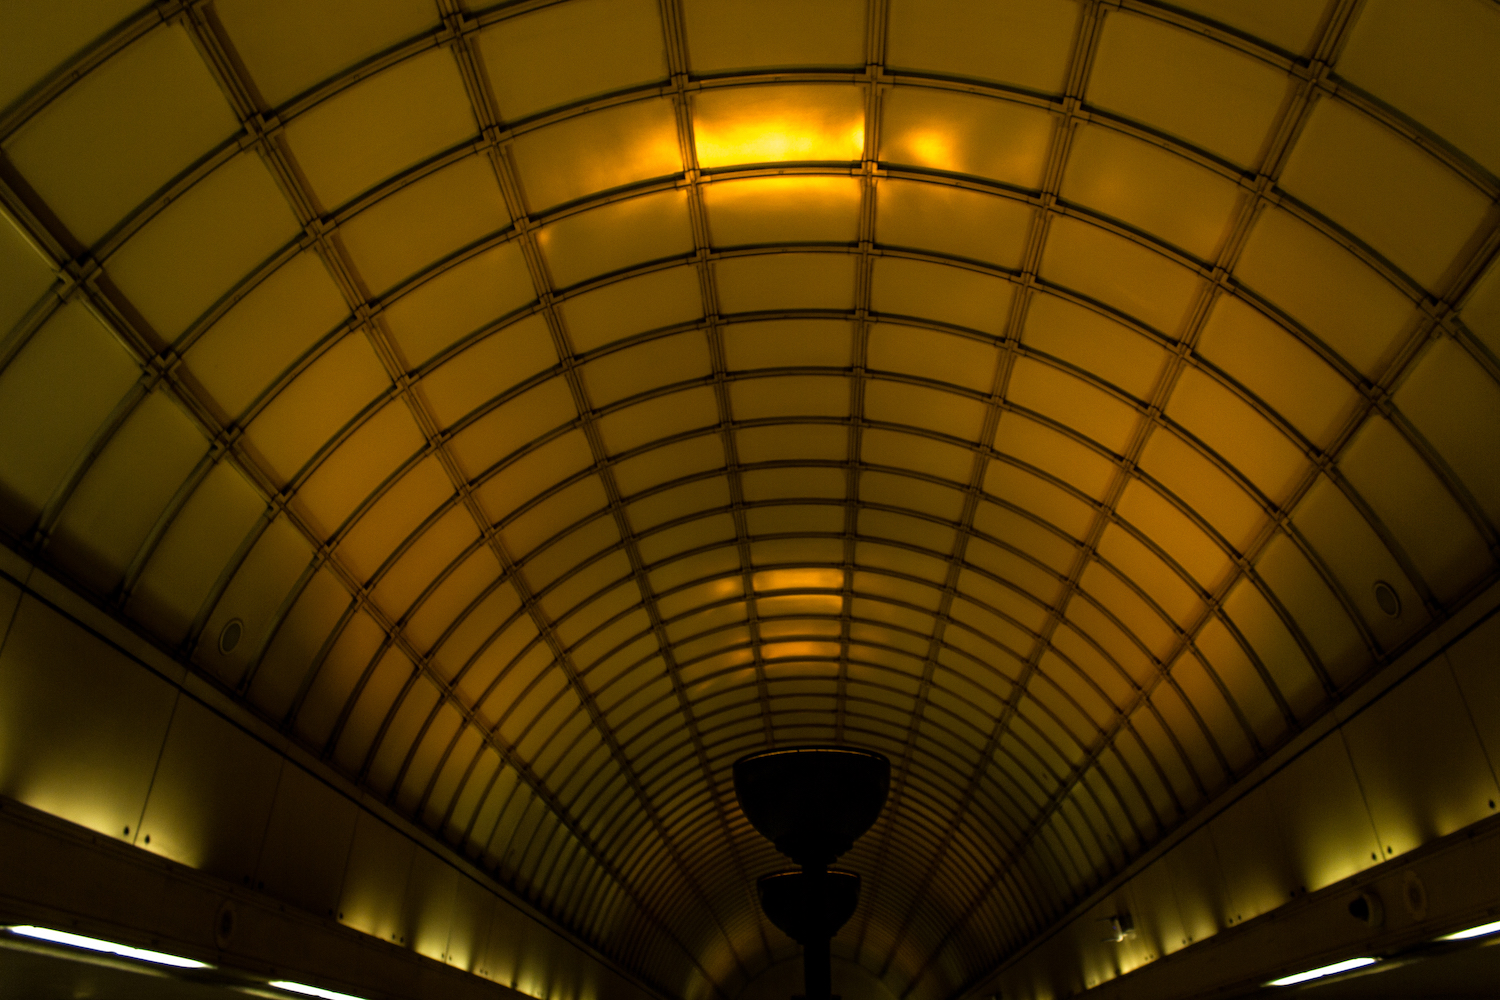 Professional Photography Interior Arch Architecture In Gants Hill Train Station London